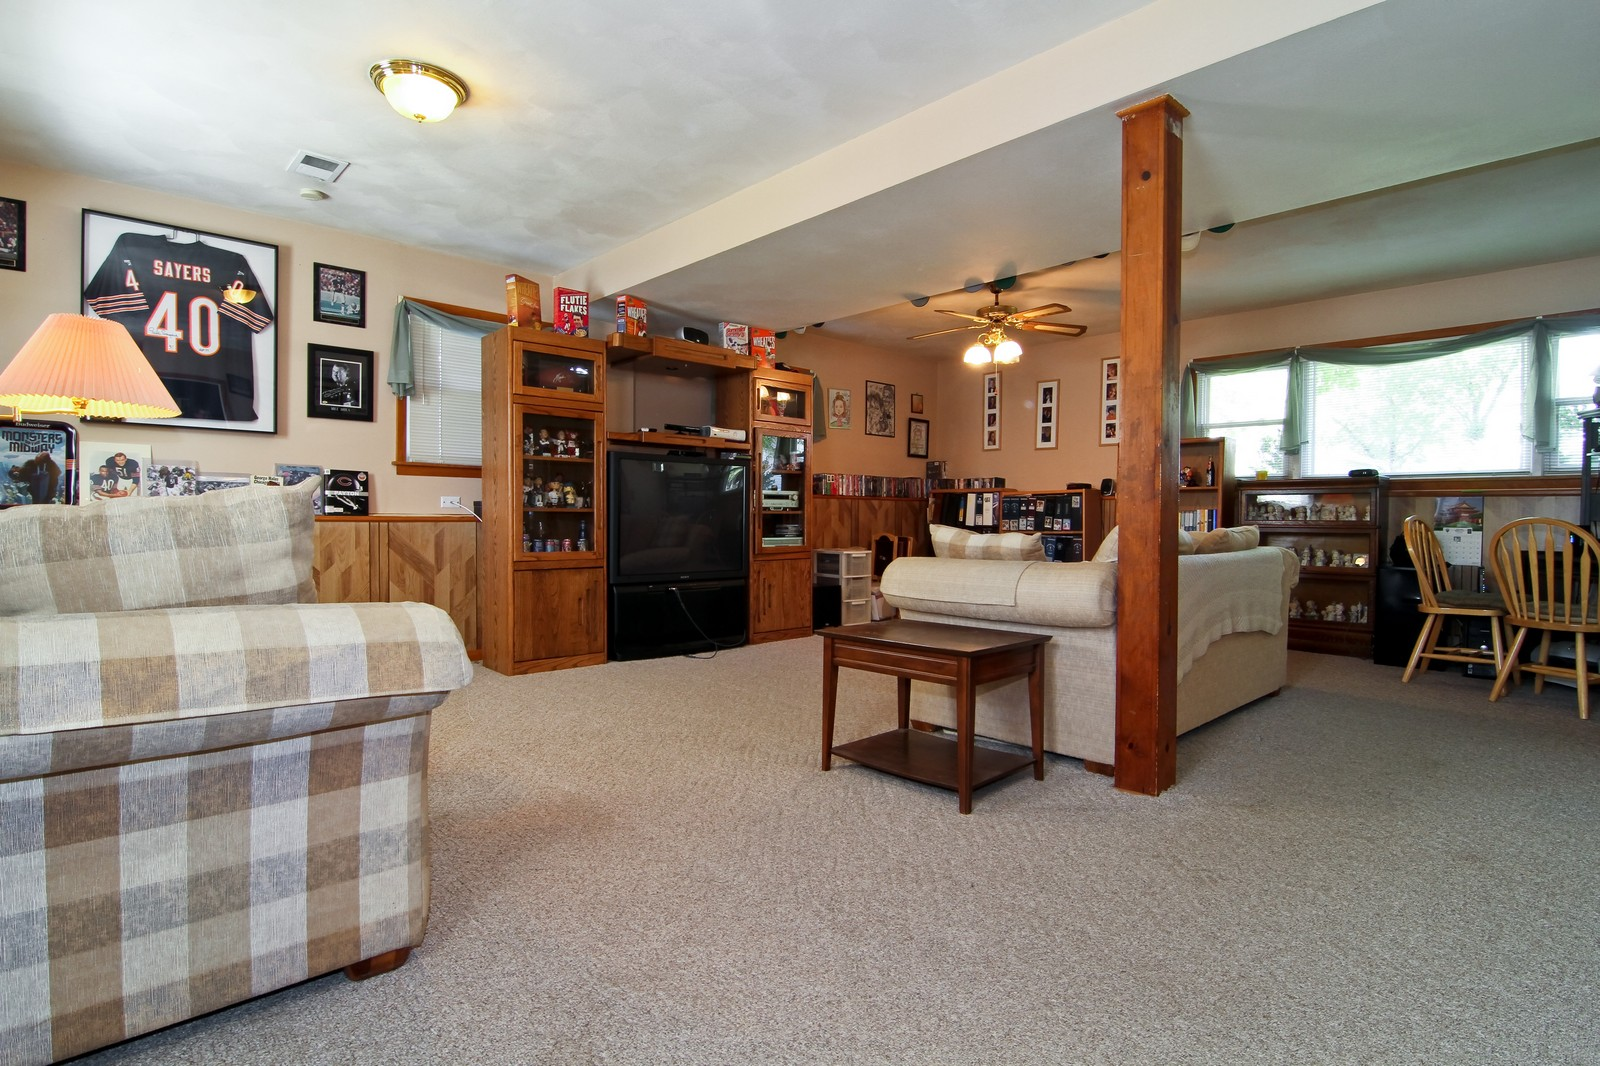 Real Estate Photography - 632 S. Lalonde Ave, Lombard, IL, 60148 - Basement